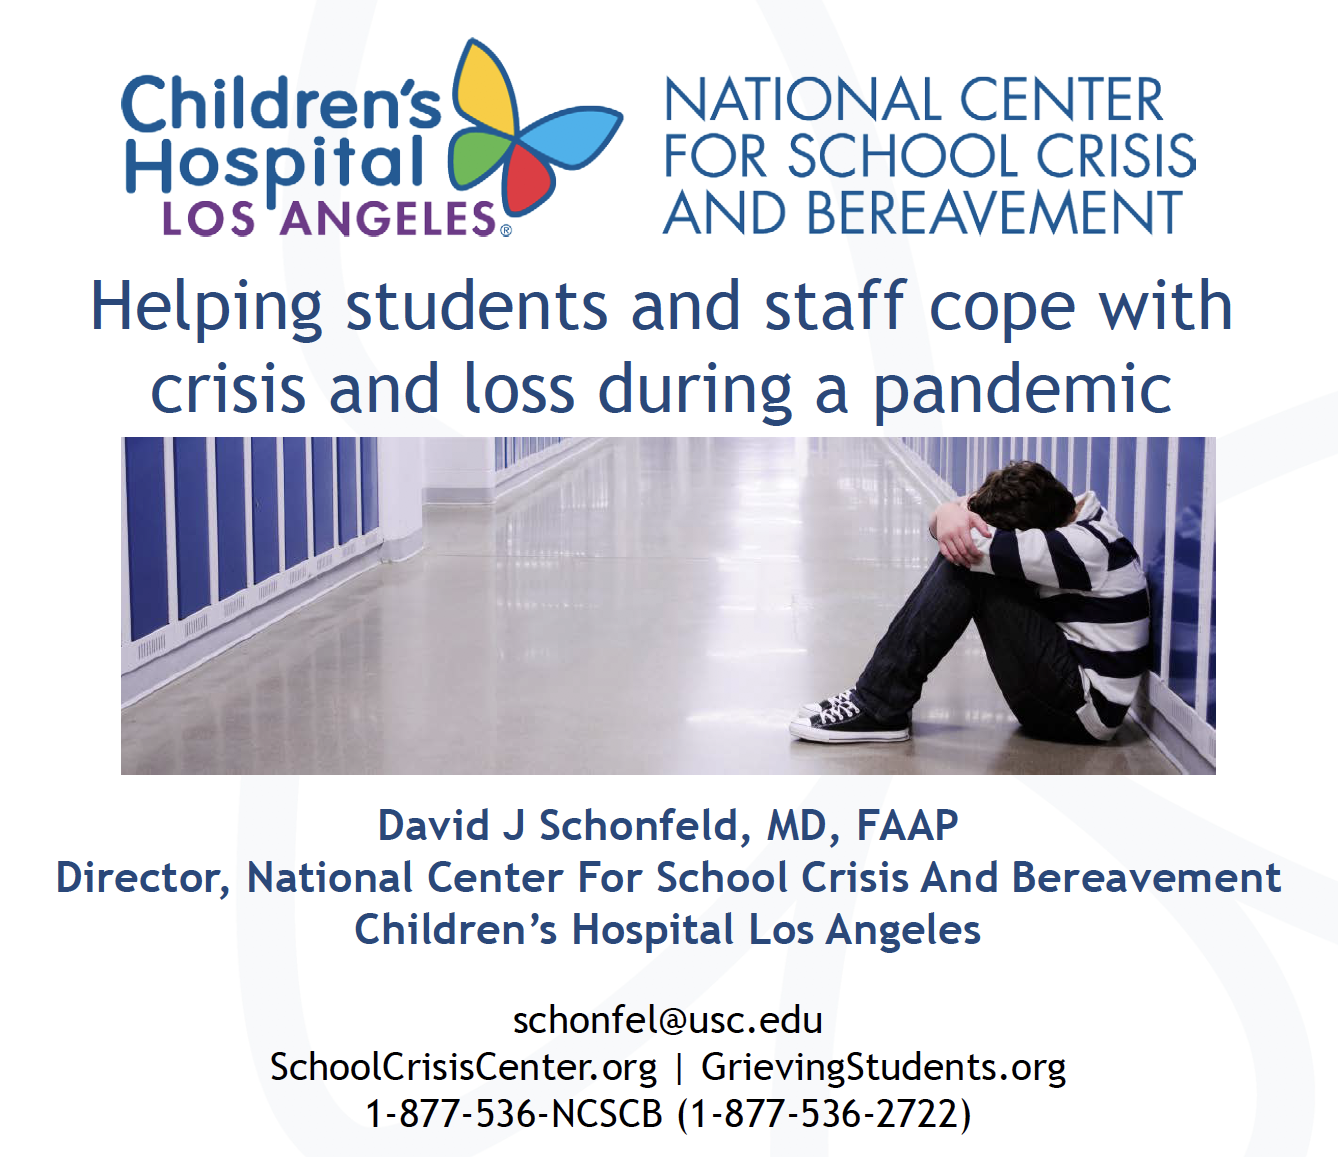 Children's Hospital LA - National Center for School Crisis and Bereavement